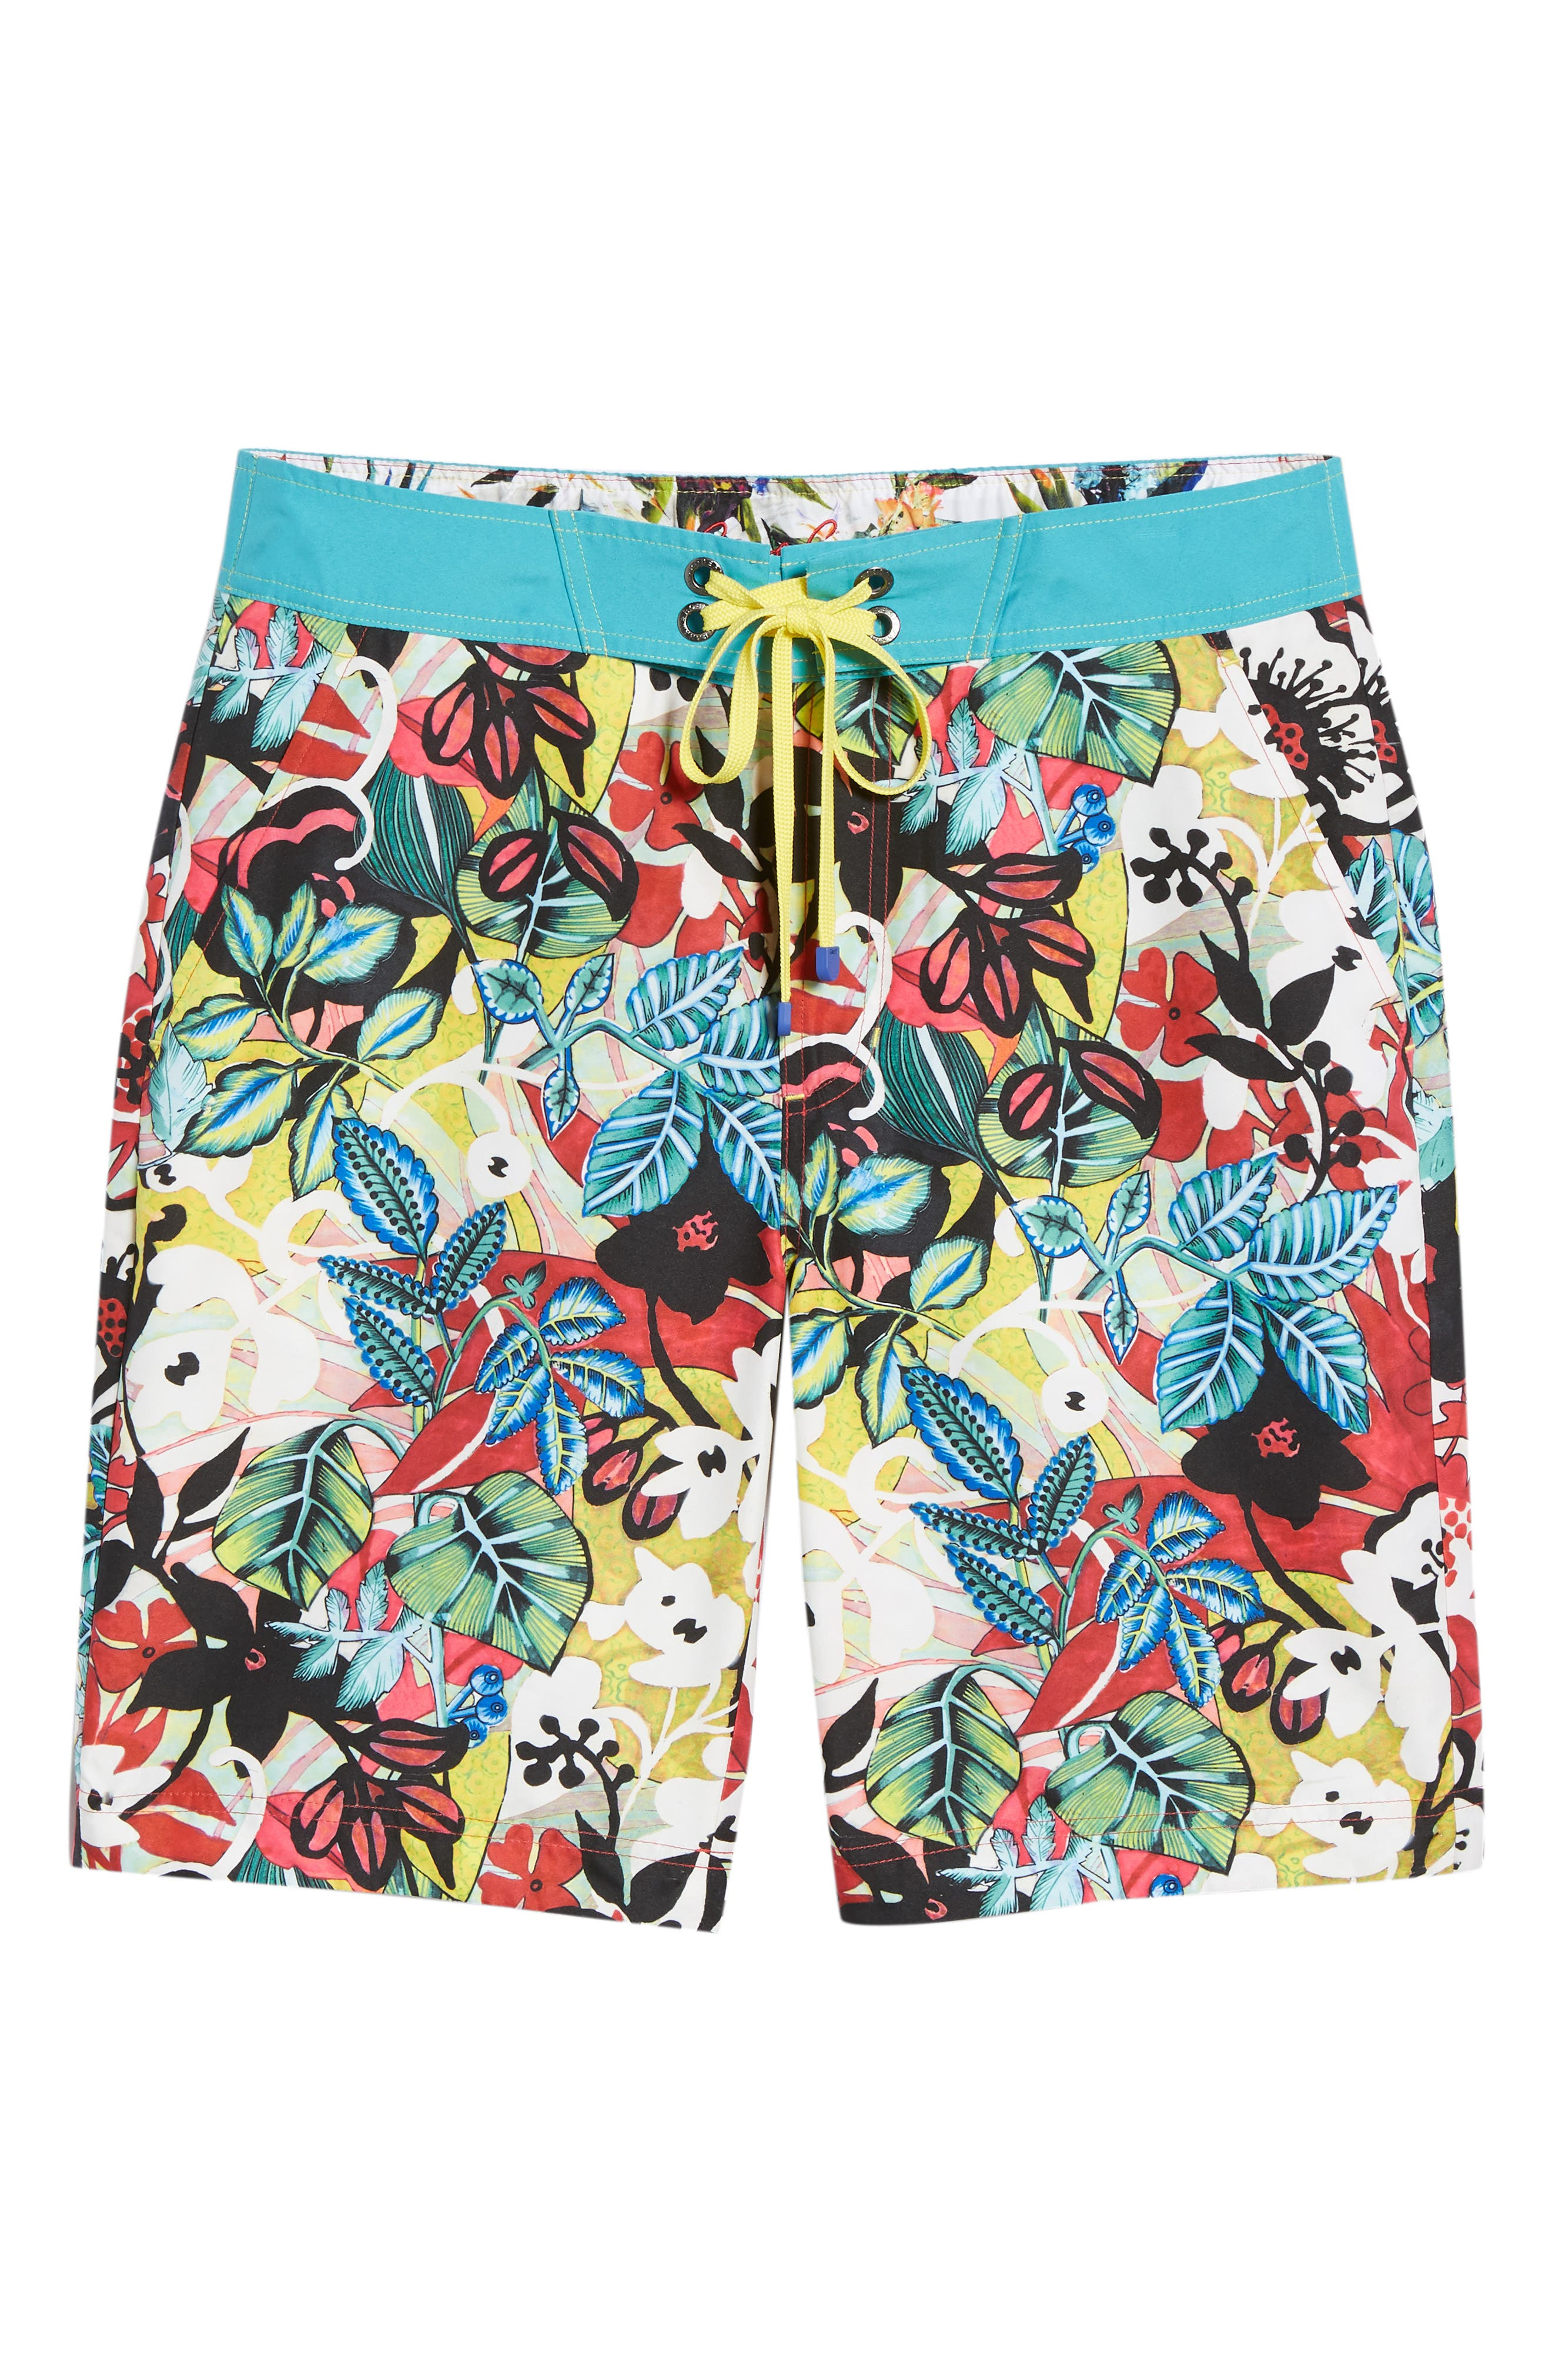 Barbarito Classic Fit Board Shorts,                             Alternate thumbnail 6, color,                             MULTI